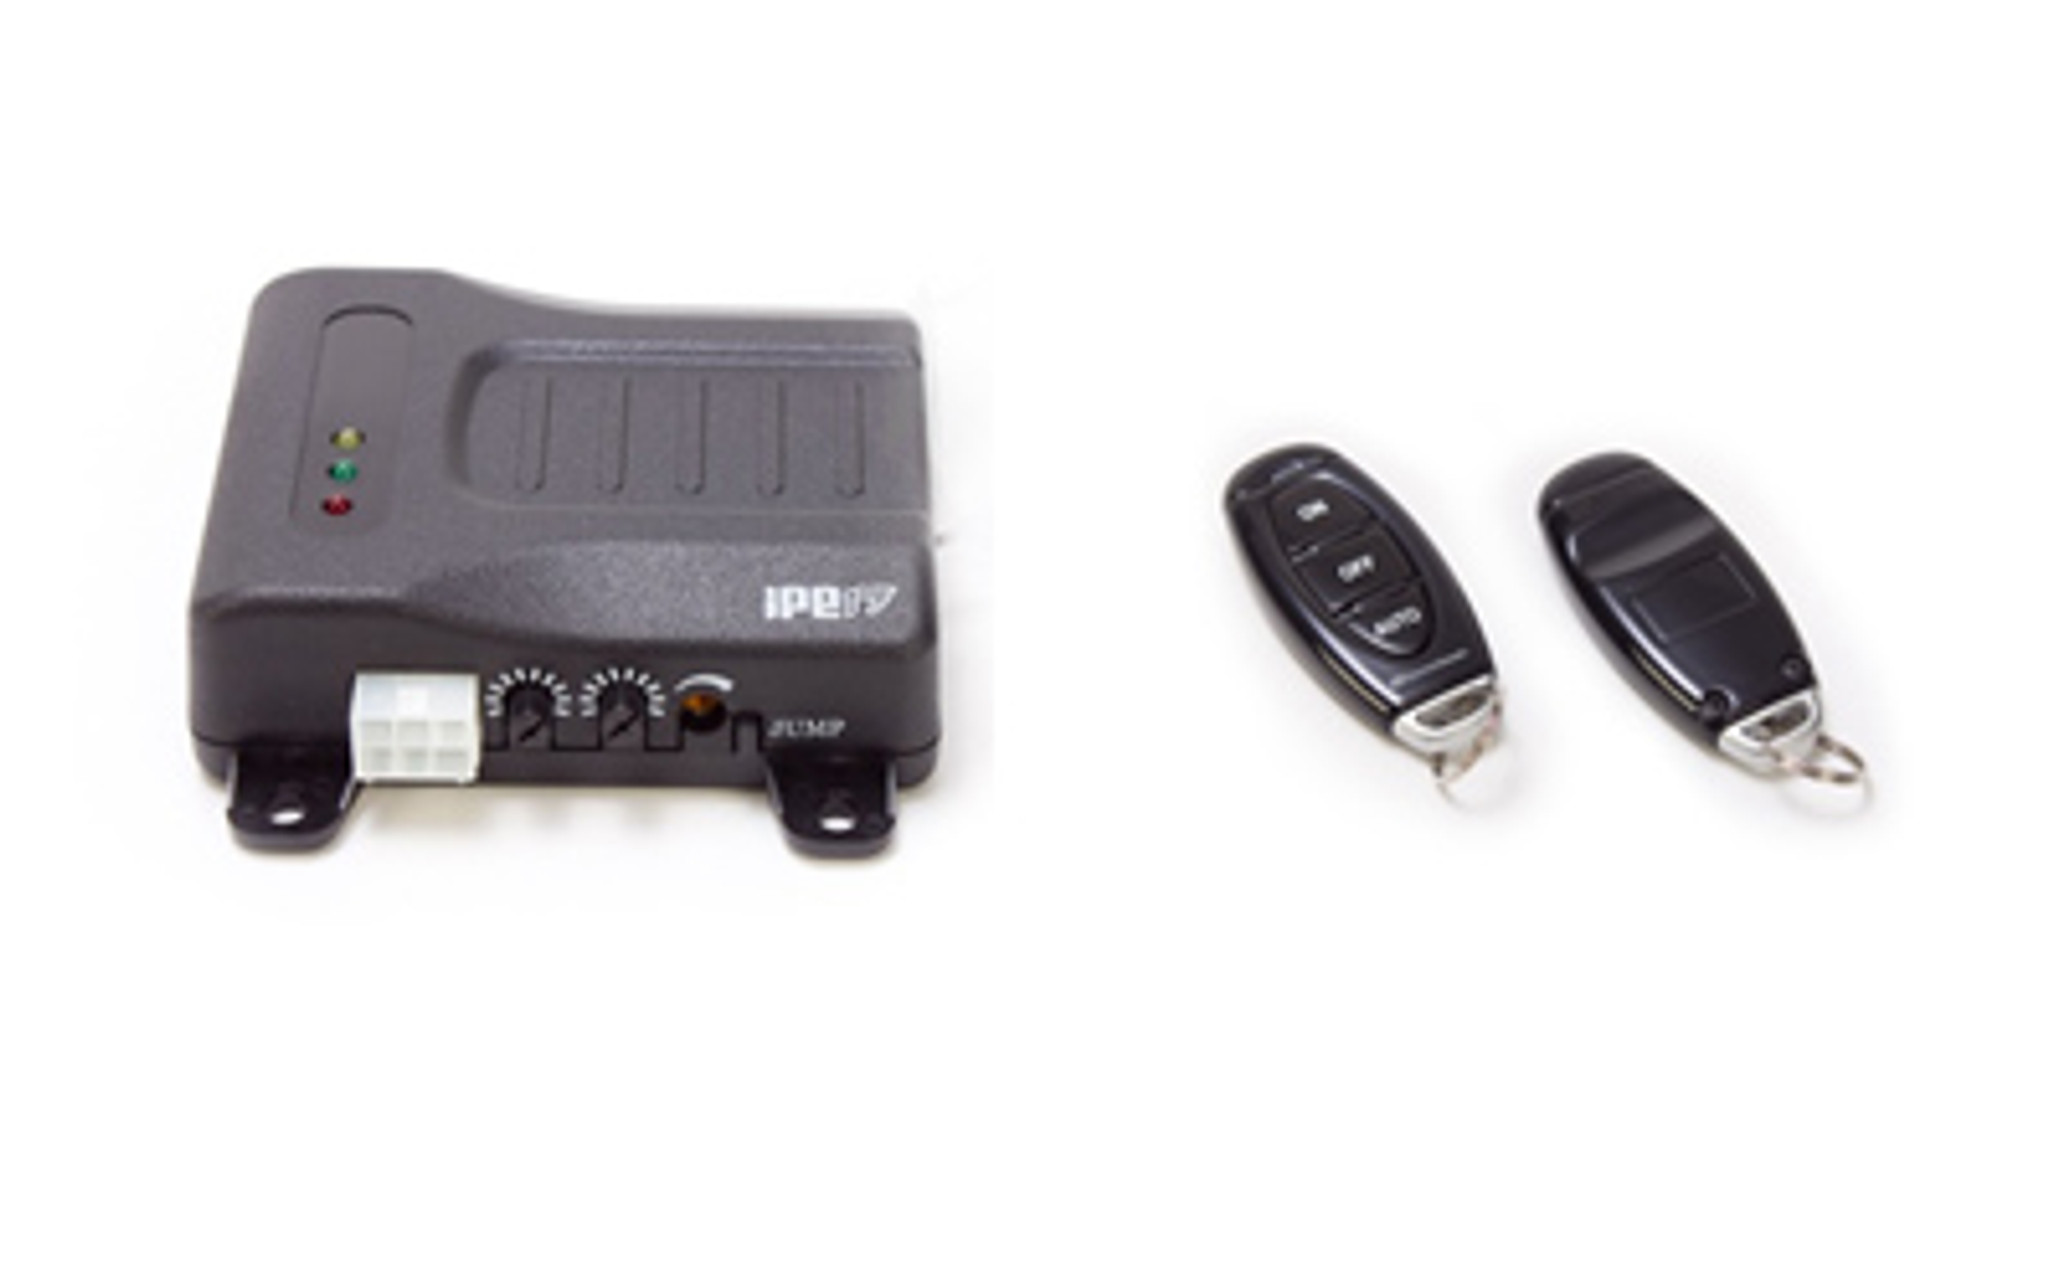 Two remotes are included